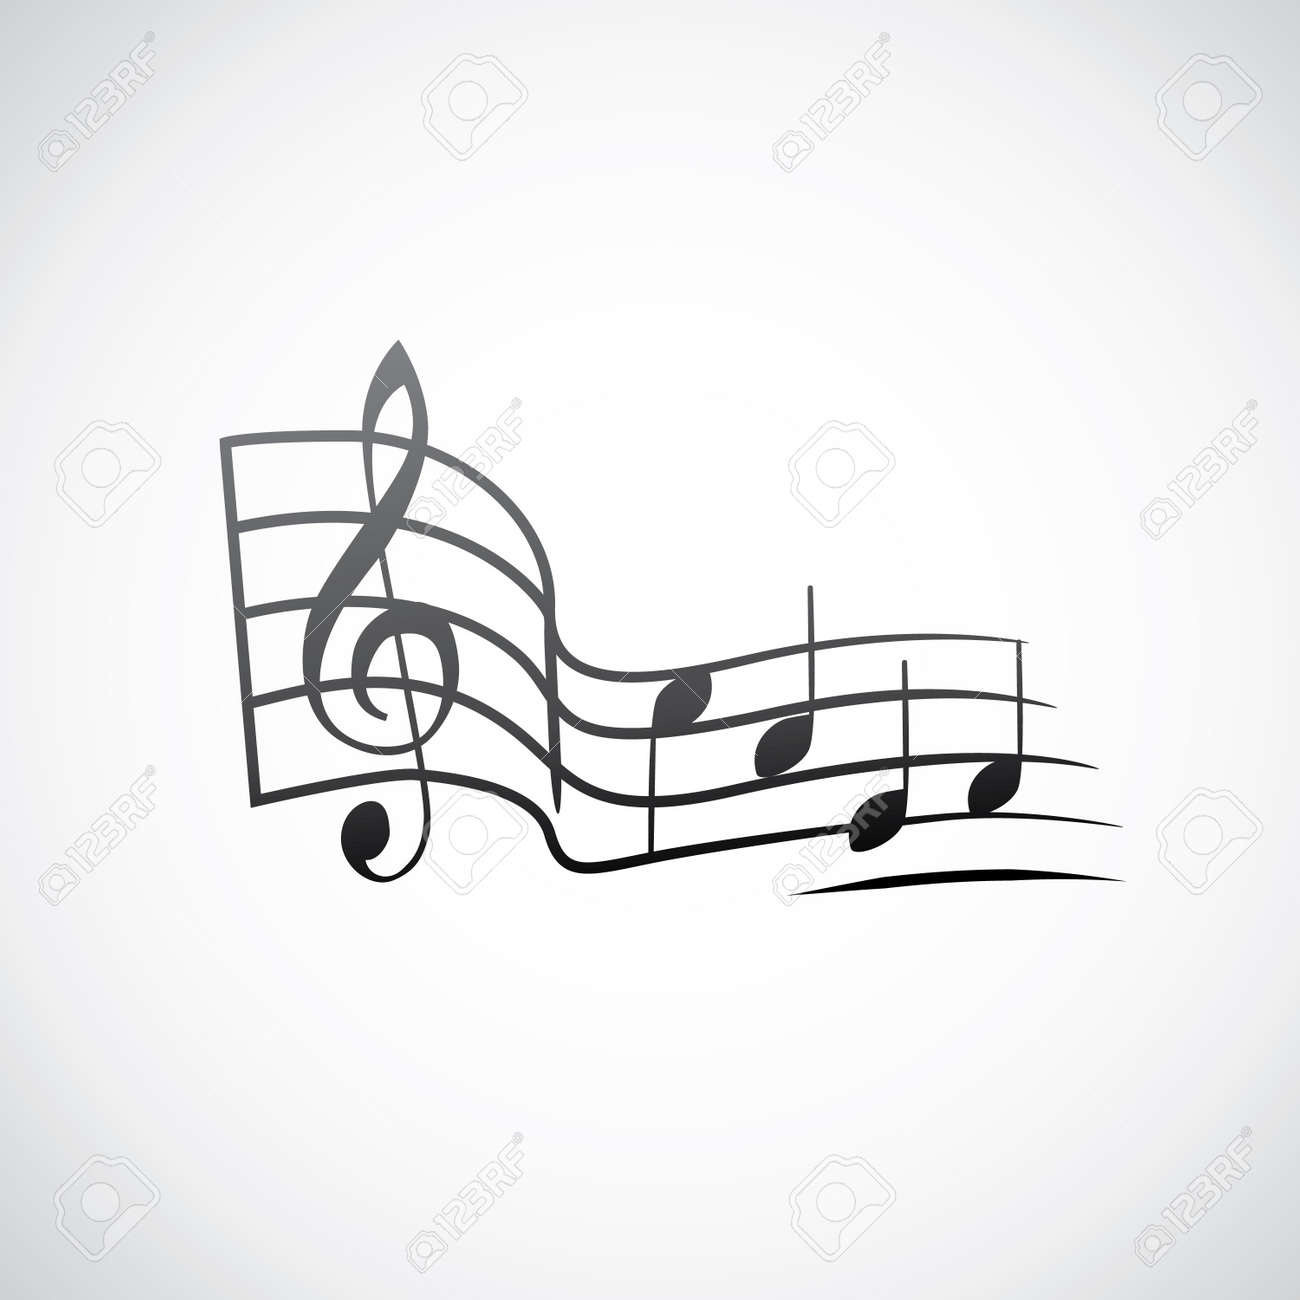 g key and notes in one tact logo - illustration Stock Vector - 17181485